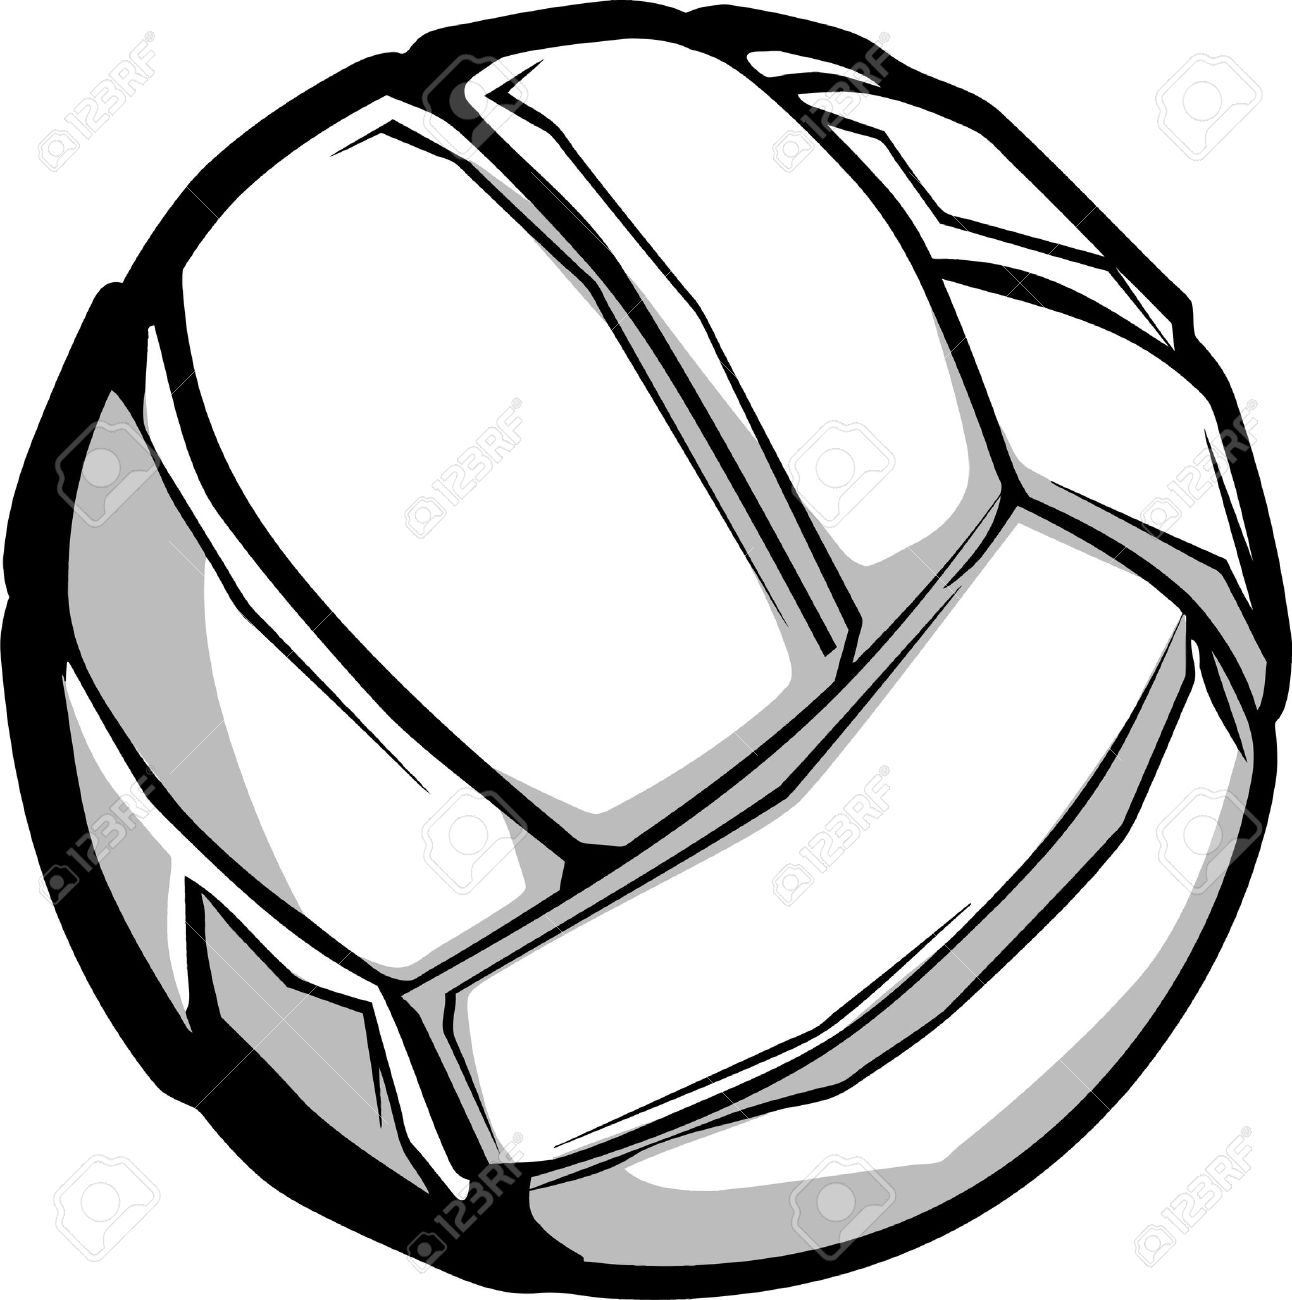 Volleyball clipart vectors clipart black and white Vector volleyball clipart 5 » Clipart Station clipart black and white